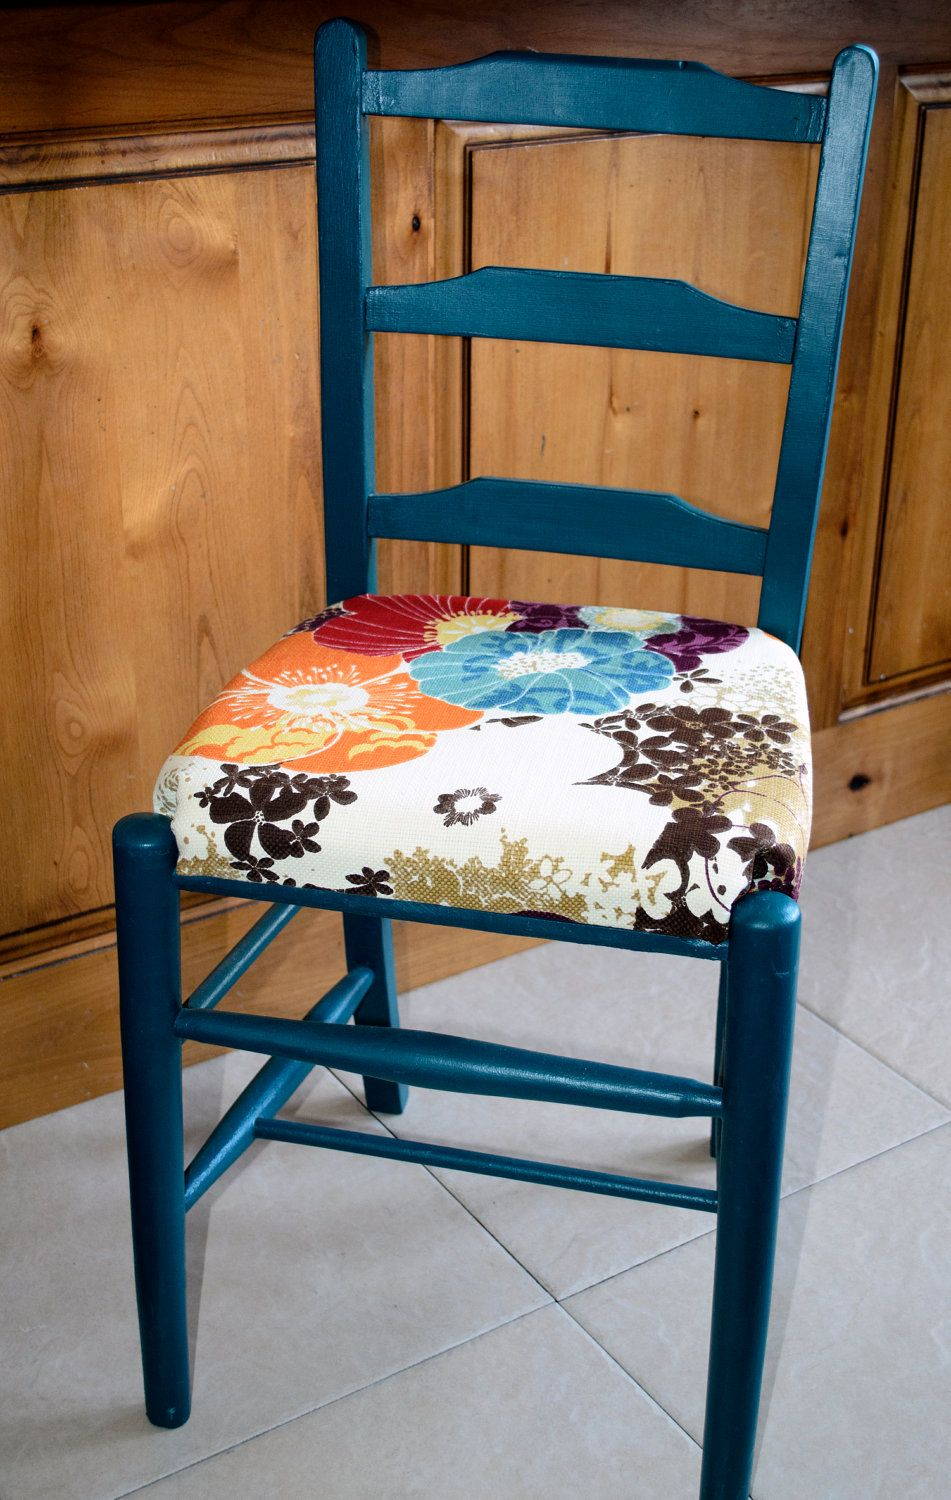 Reupholster Dining Room Chair Seat Throne Rental Nyc Ladder Back With Floral Cushion | Home Decor Pinterest Cushions, Furniture ...